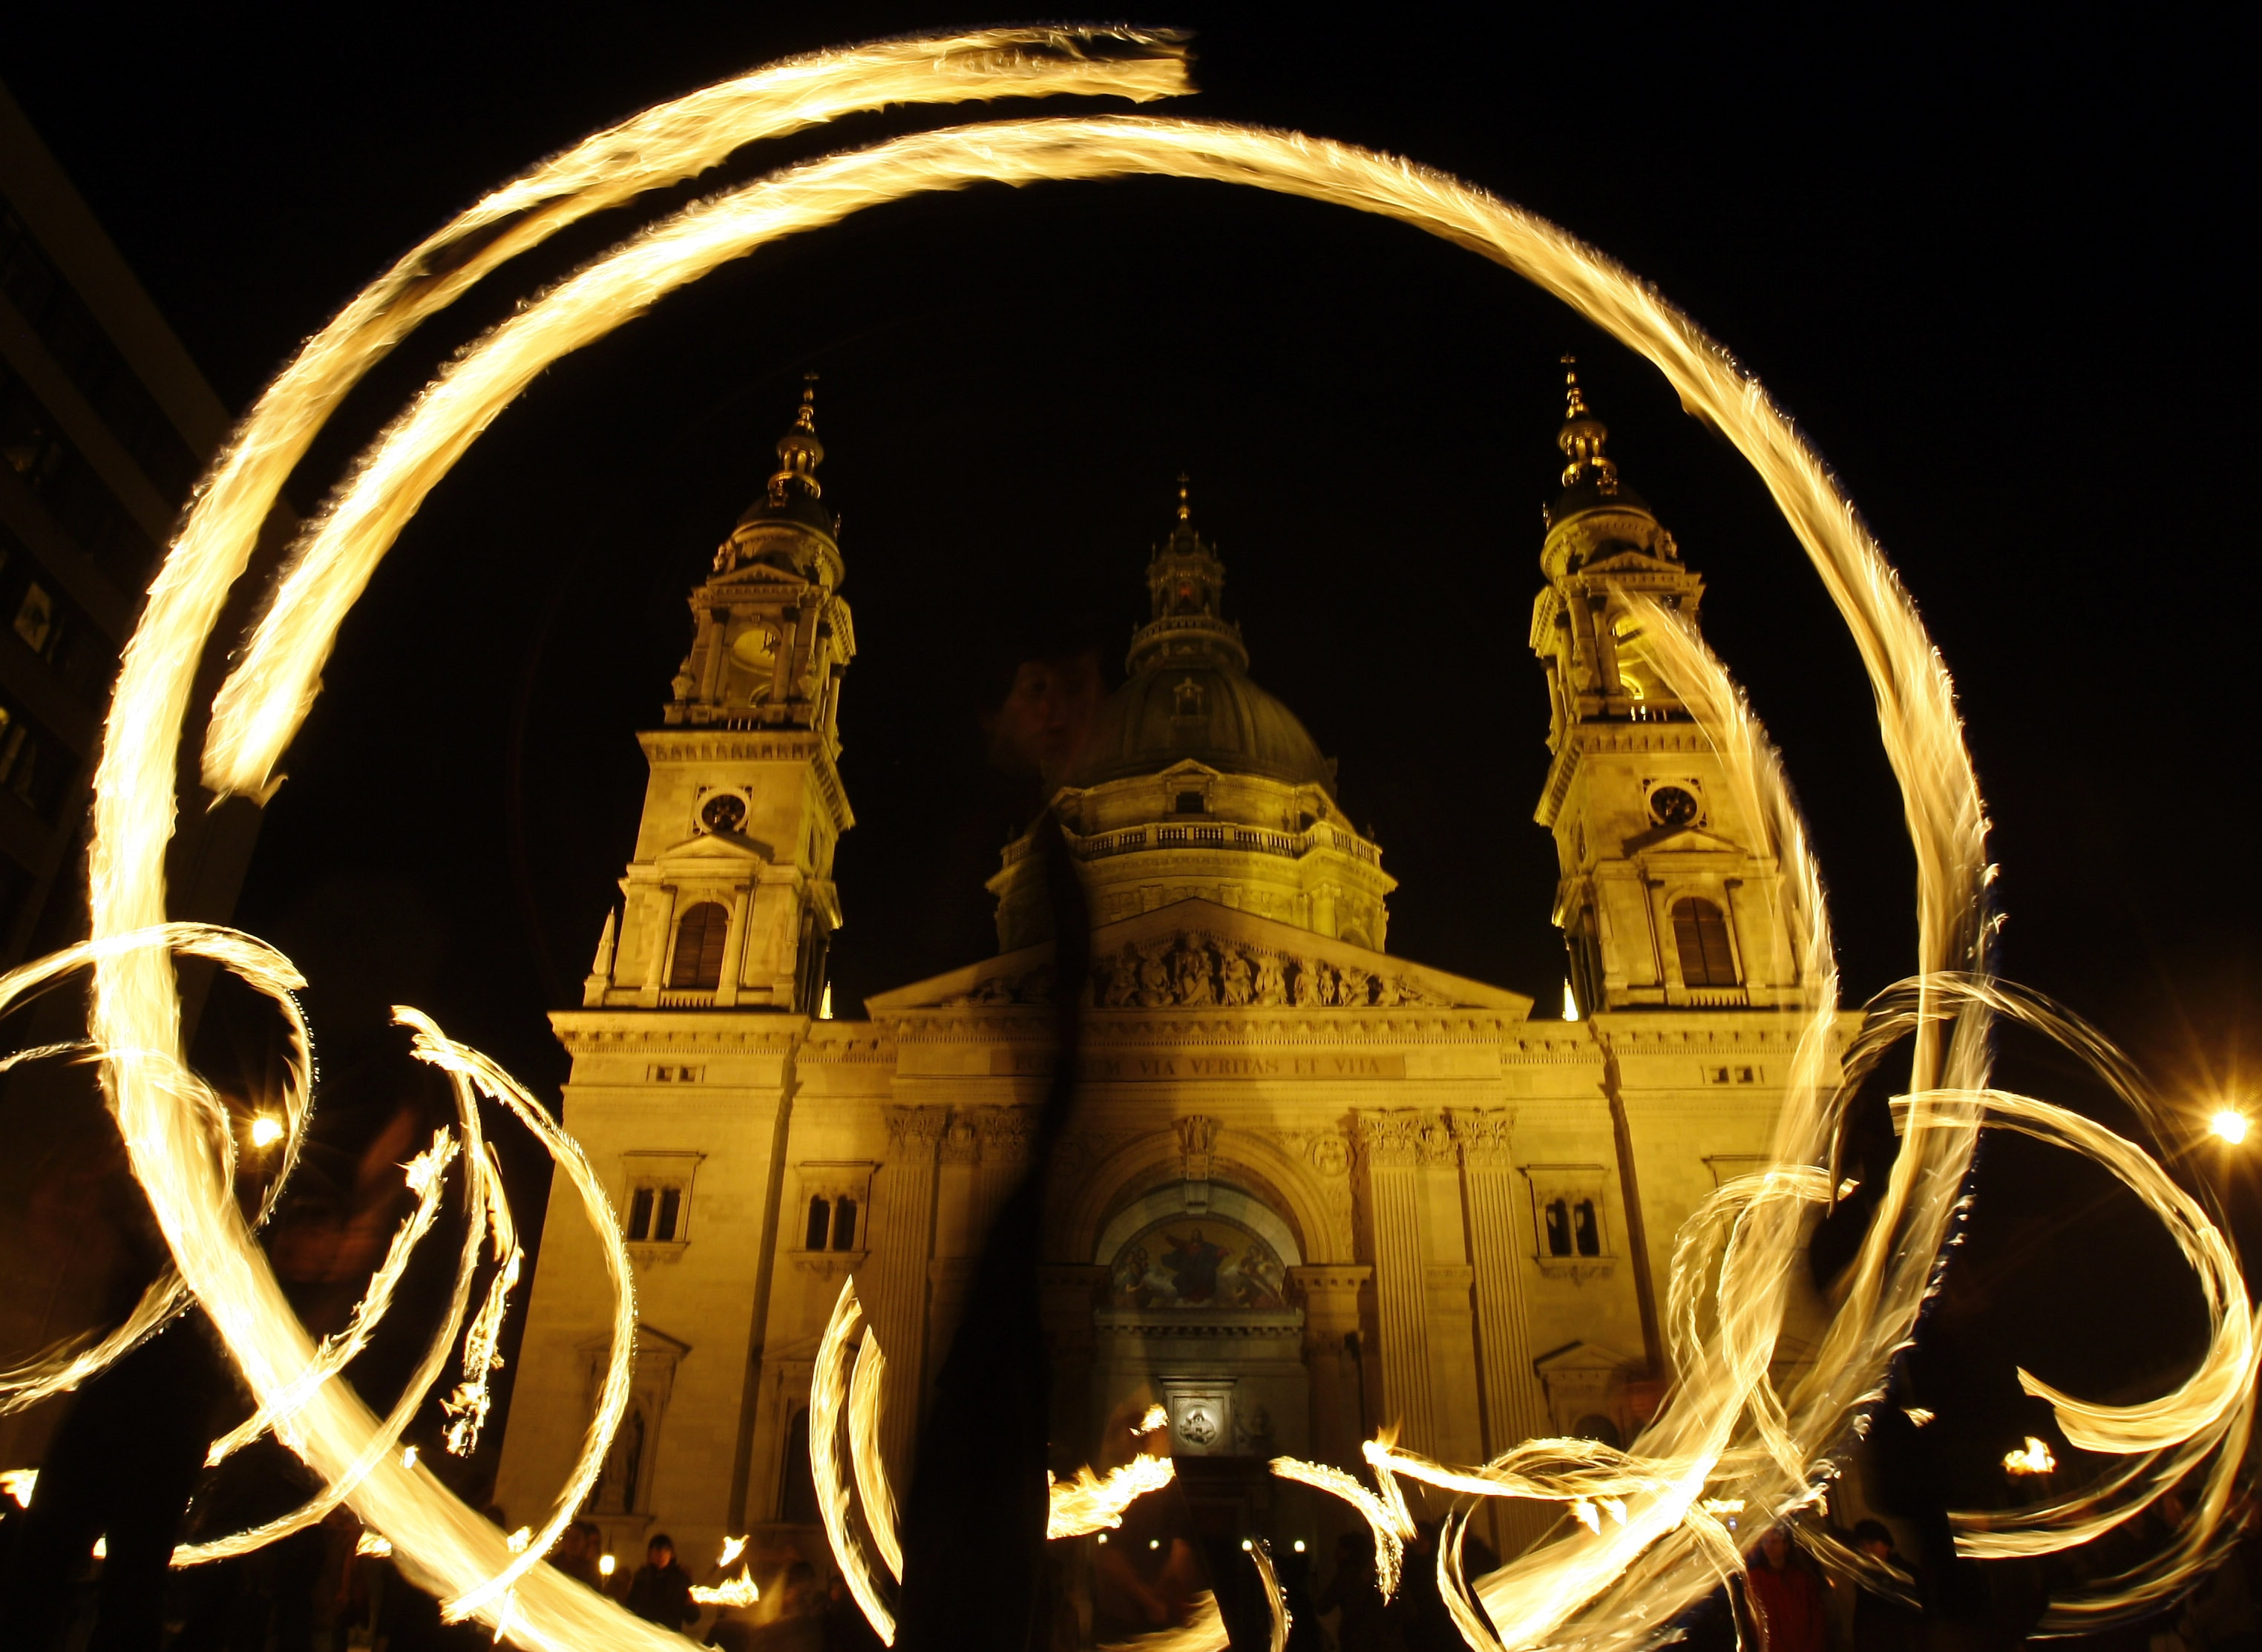 Fire acrobats perform during a gathering to celebrate peace in front of the Main Cathedral in Budapest, 21 March 2009, REUTERS/Karoly Arvai